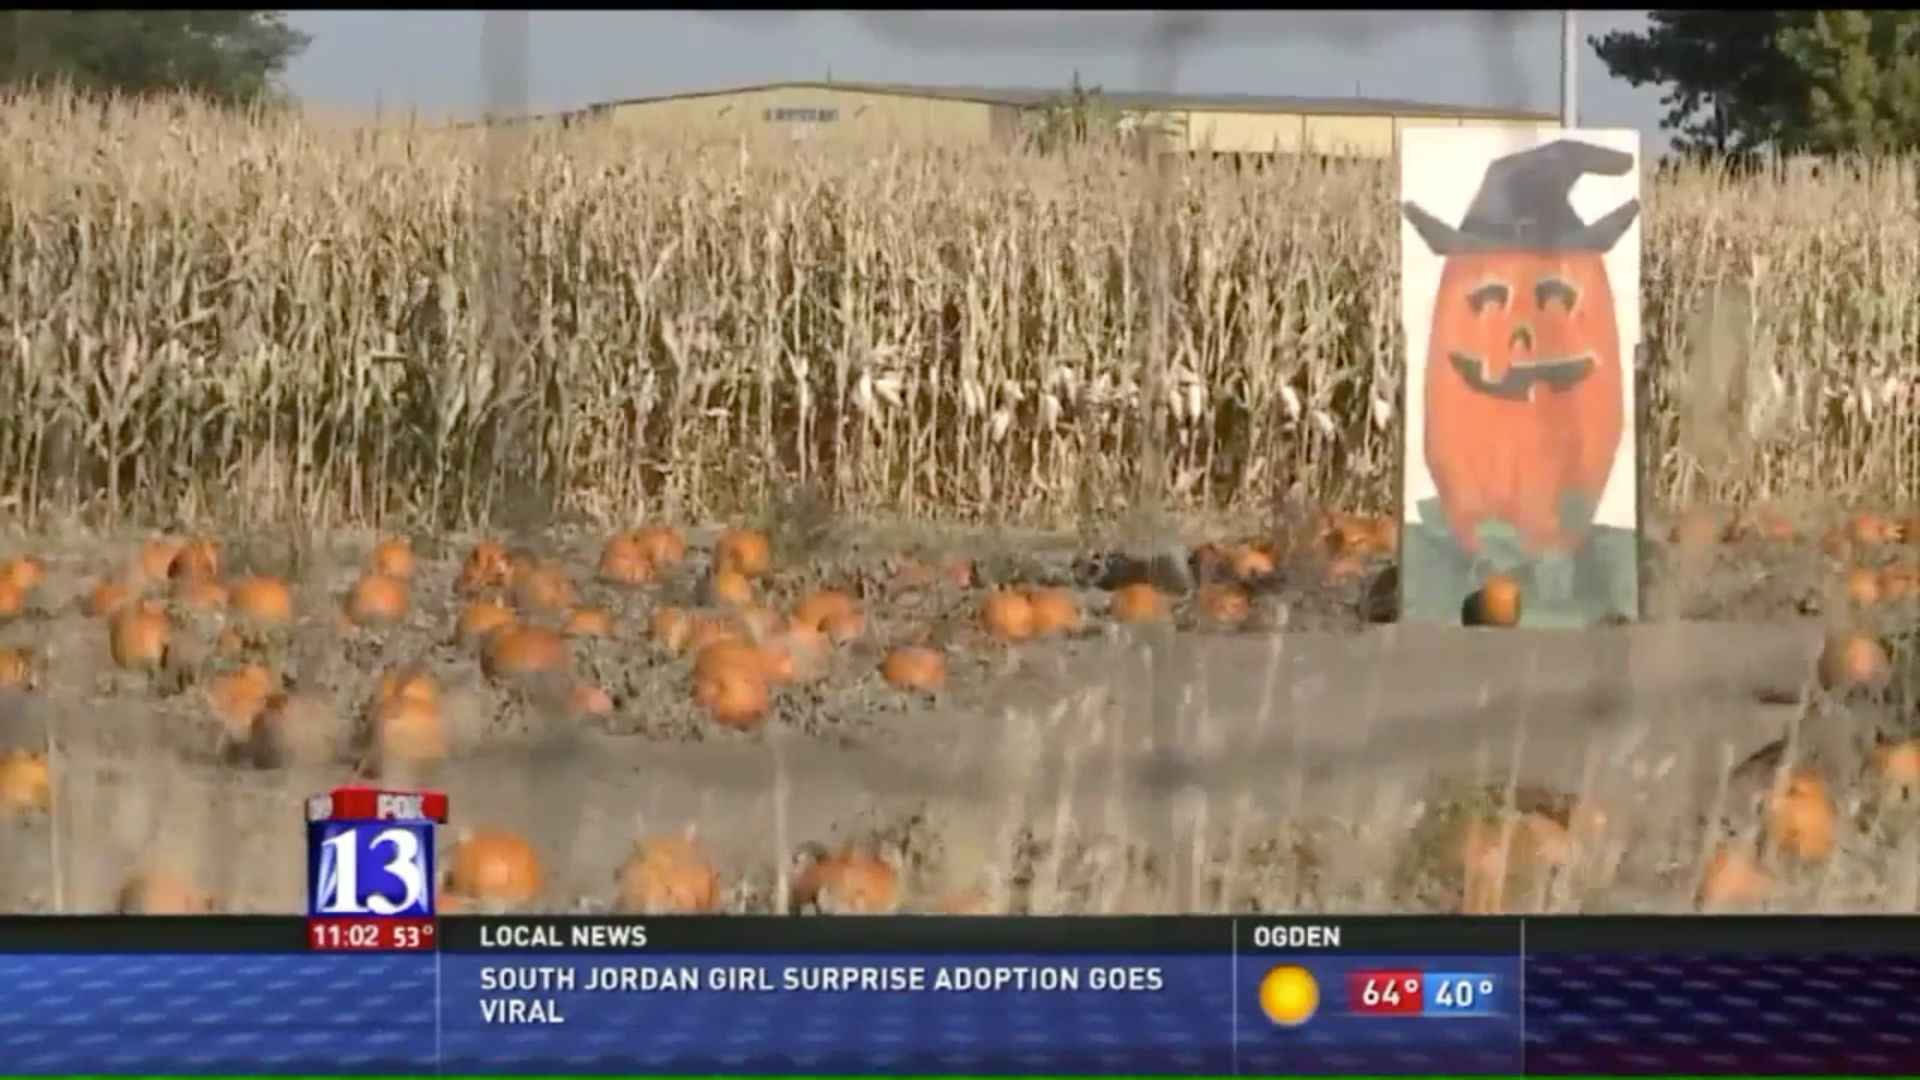 A 3-year-old boy was accidentally left behind at this corn maze in Utah, police said.